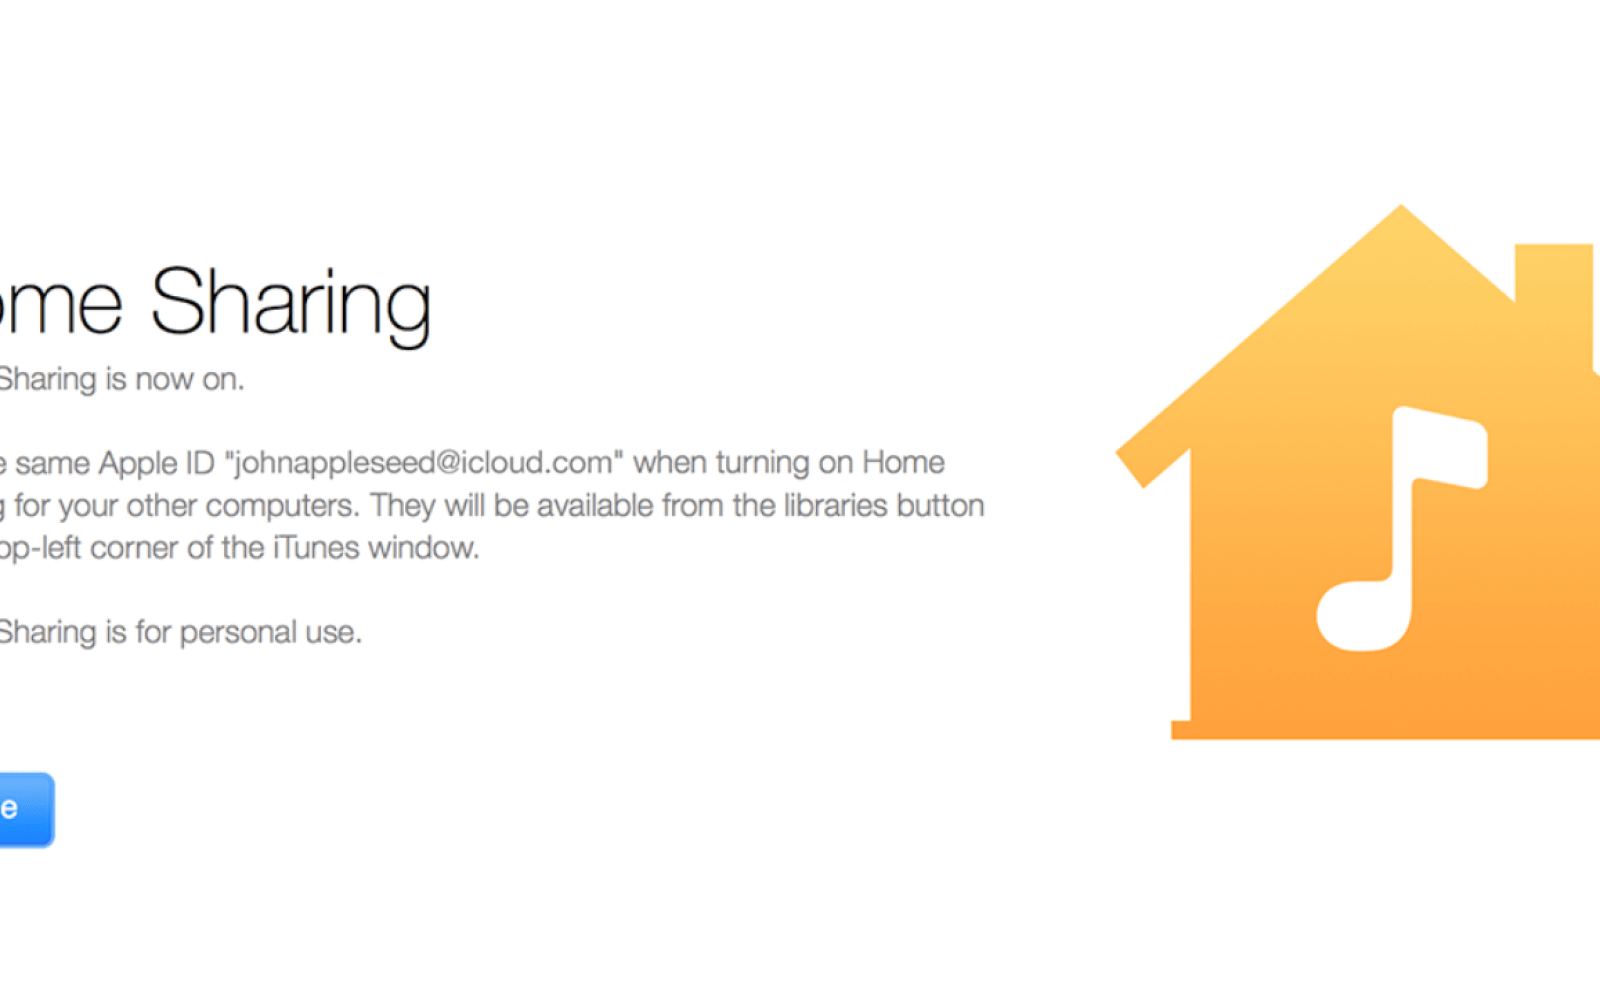 iOS 9 How-To: Access your iTunes library using Home Sharing